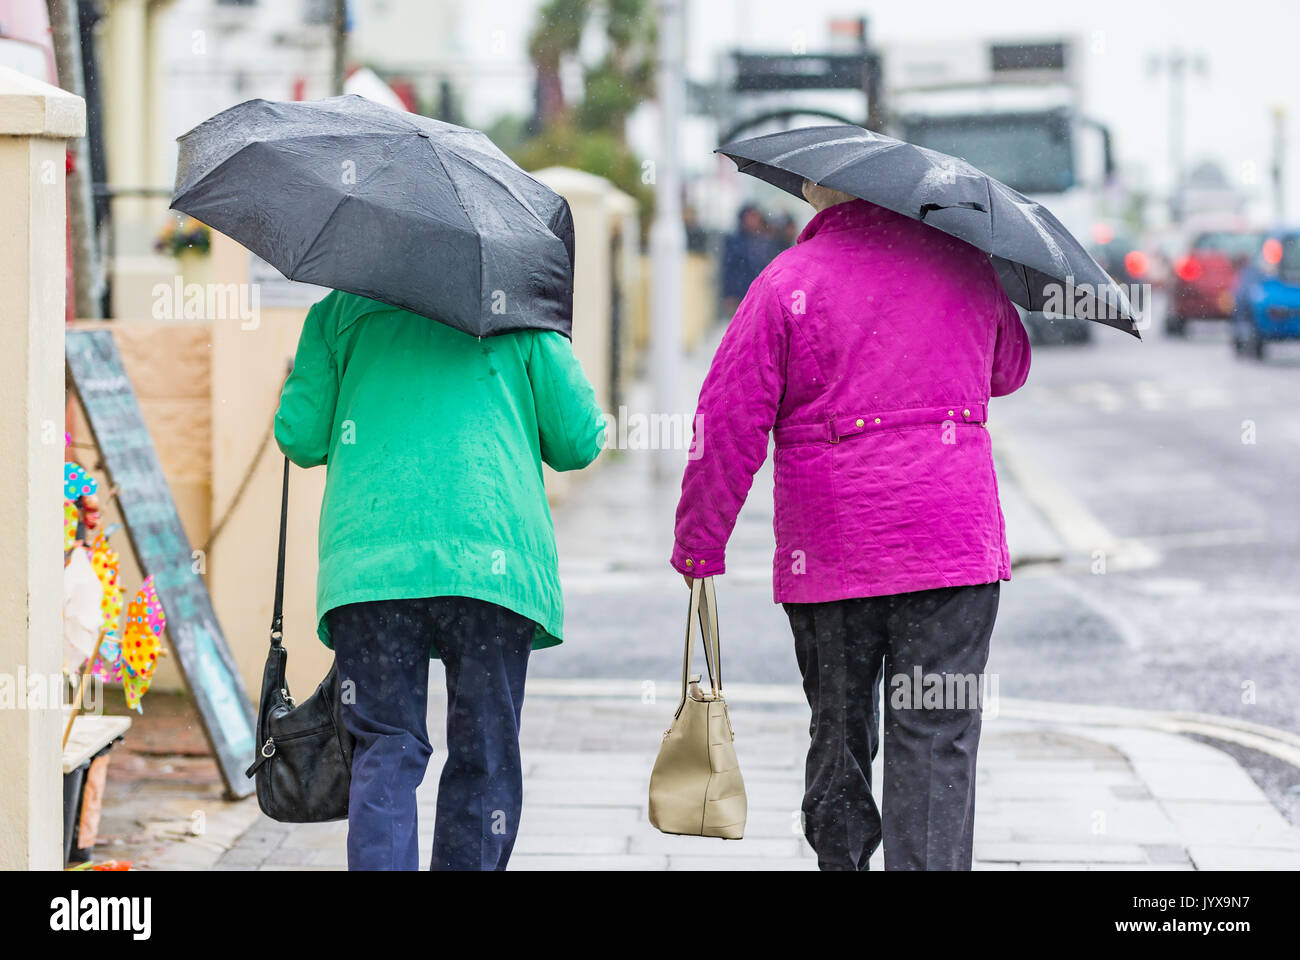 Rear view of people walking in the rain holding umbrellas. - Stock Image